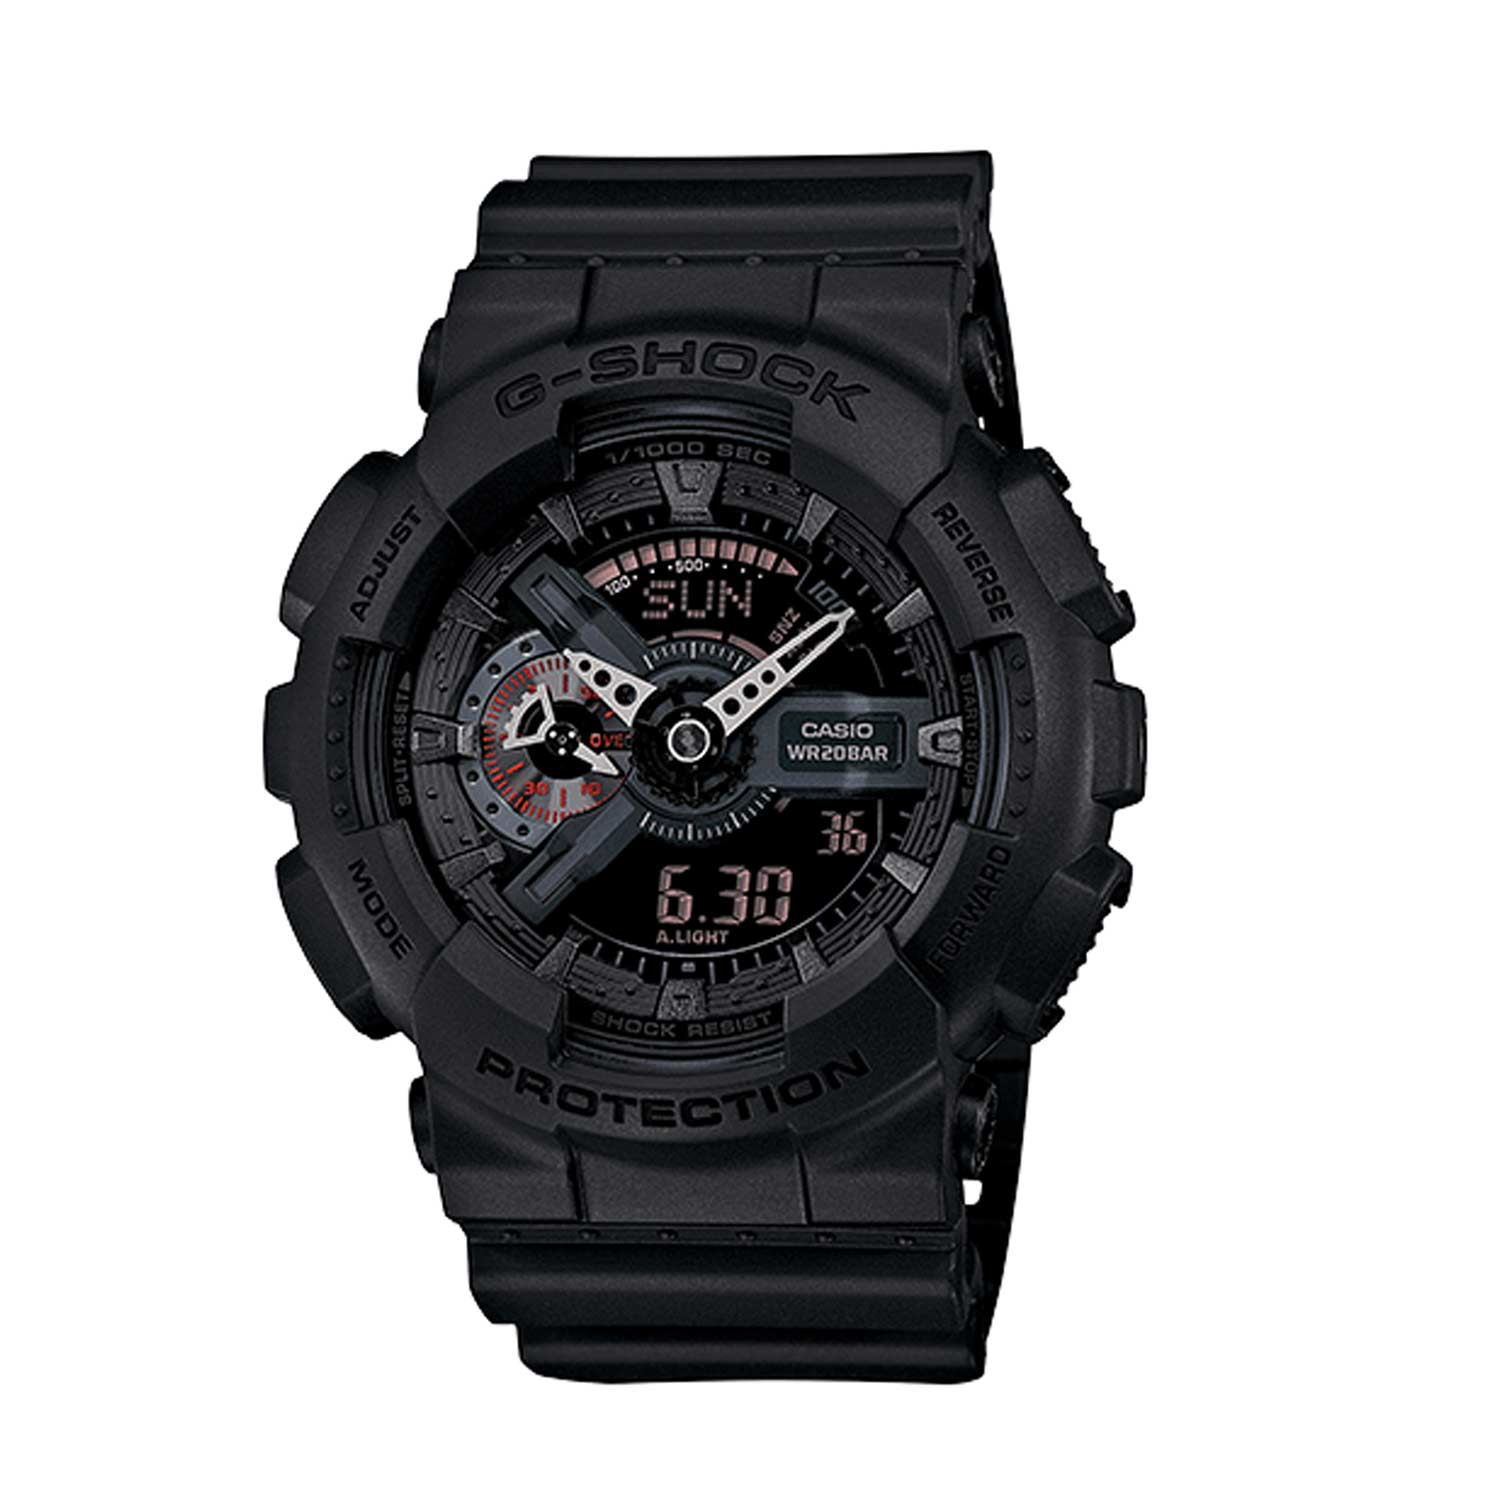 Casio G-Shock Military Series Watch